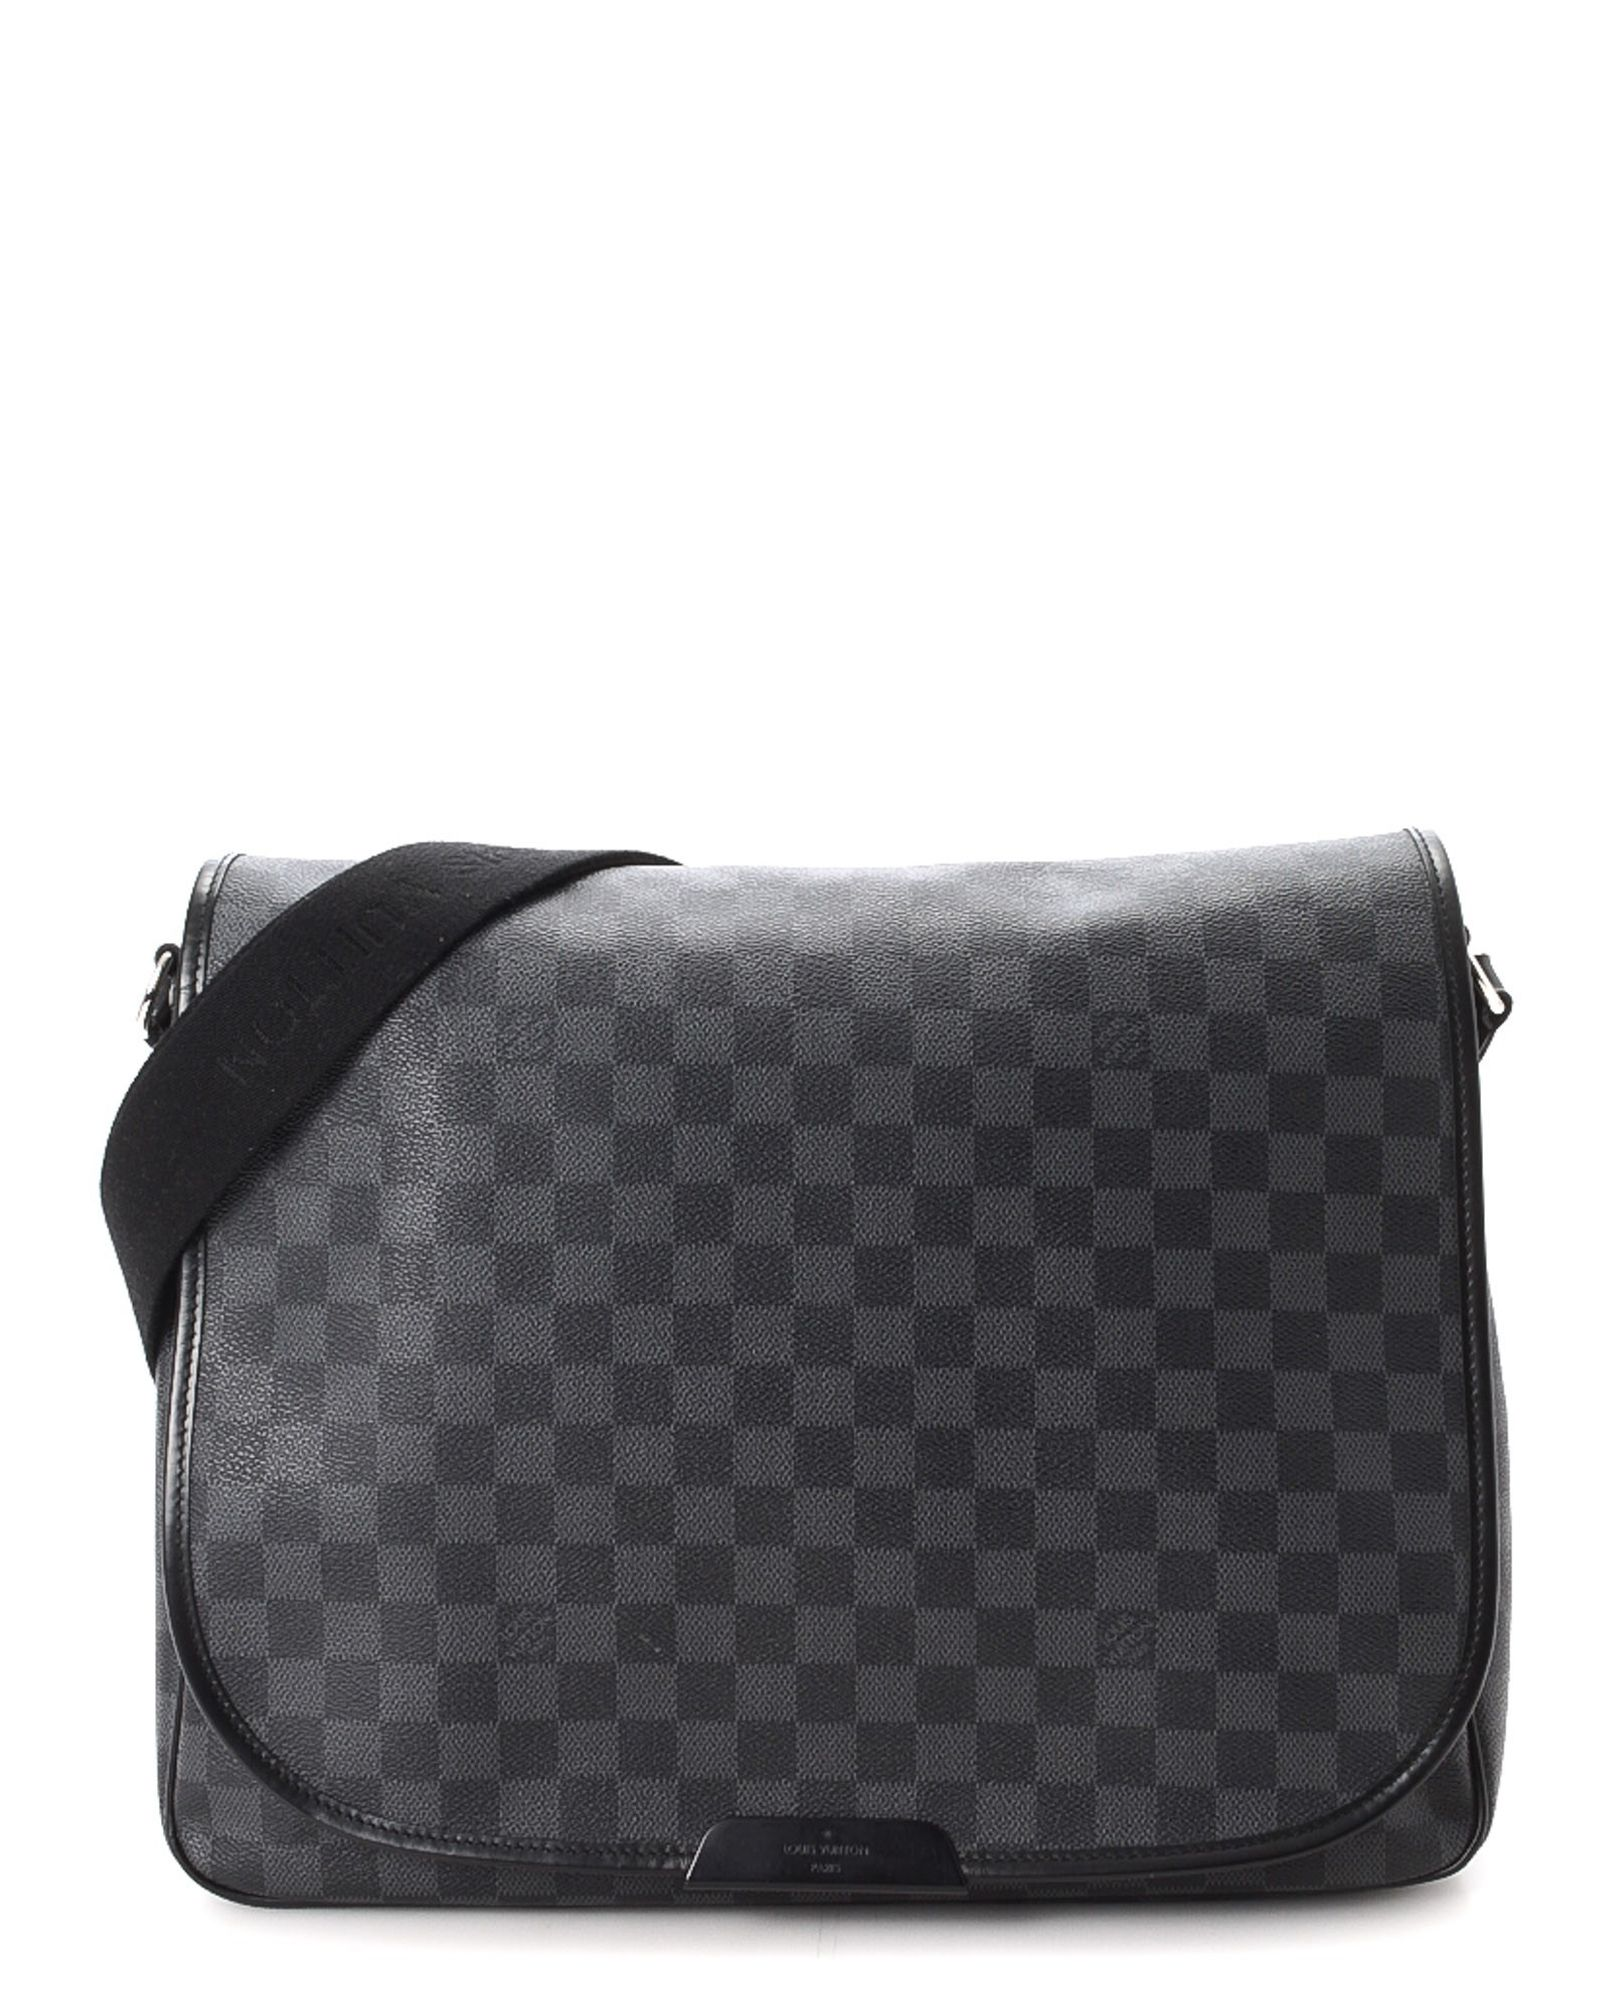 76ef938beae74 Louis Vuitton Daniel GM Damier Graphite Messenger Bag - Vintage ...